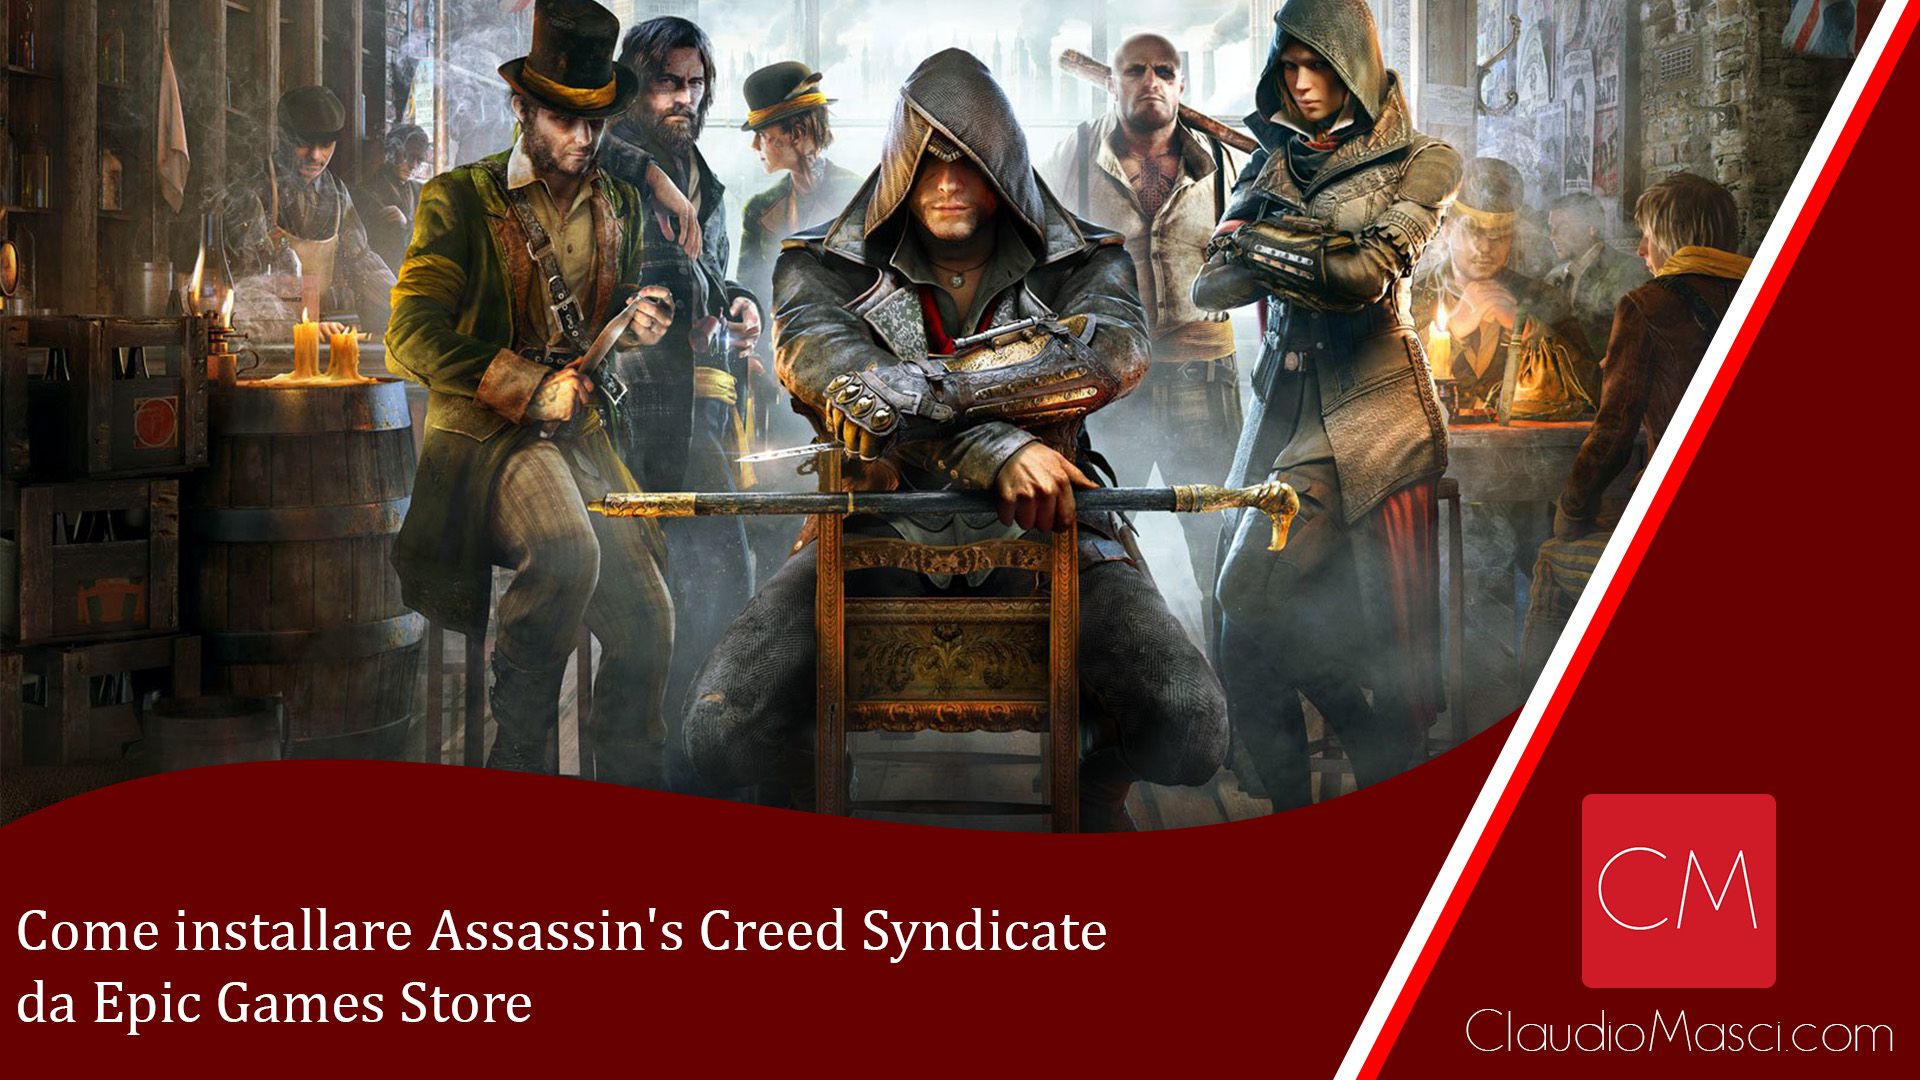 Come installare Assassin's Creed Syndicate da Epic Games Store